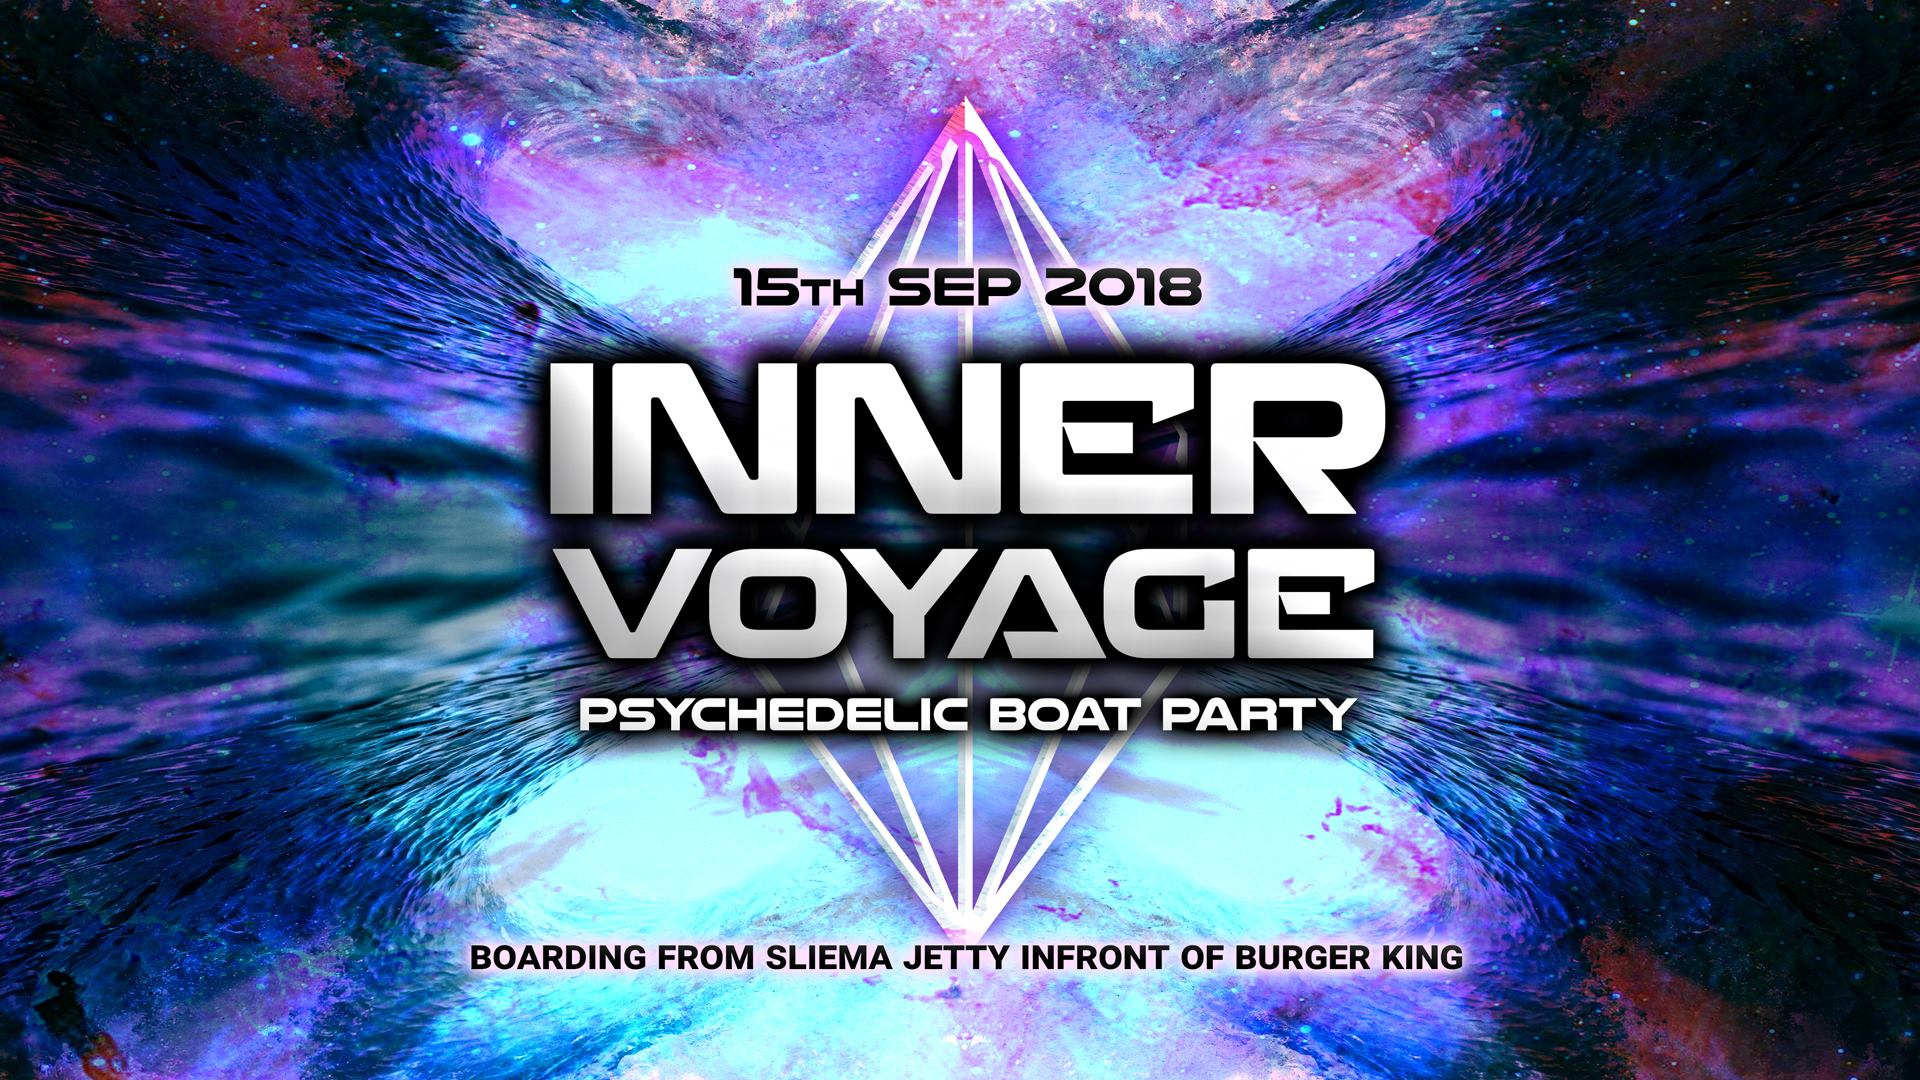 Inner Voyage Psychedelic boat party